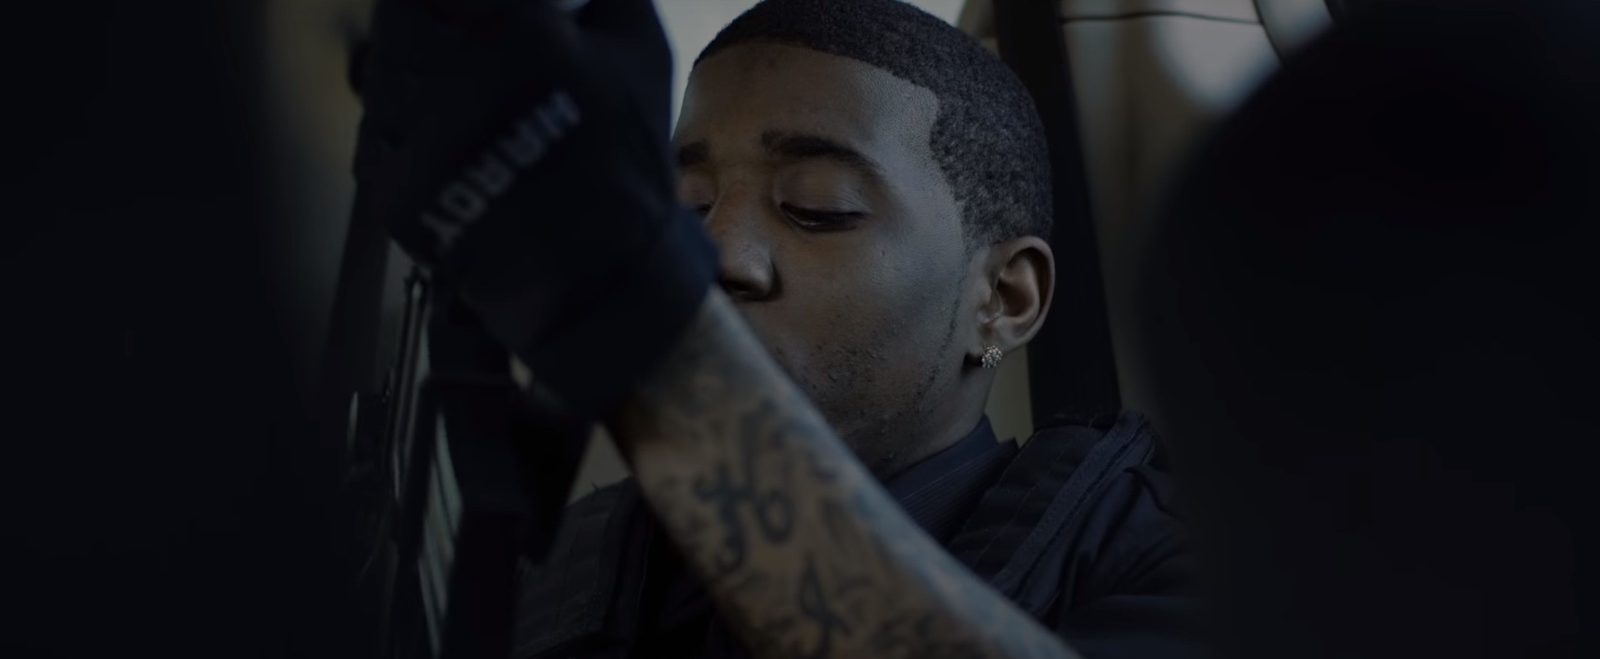 """Hardy Work Gloves - YFN Lucci - """"Heartless"""" ft. Rick Ross (2017) Official Music Video Product Placement"""